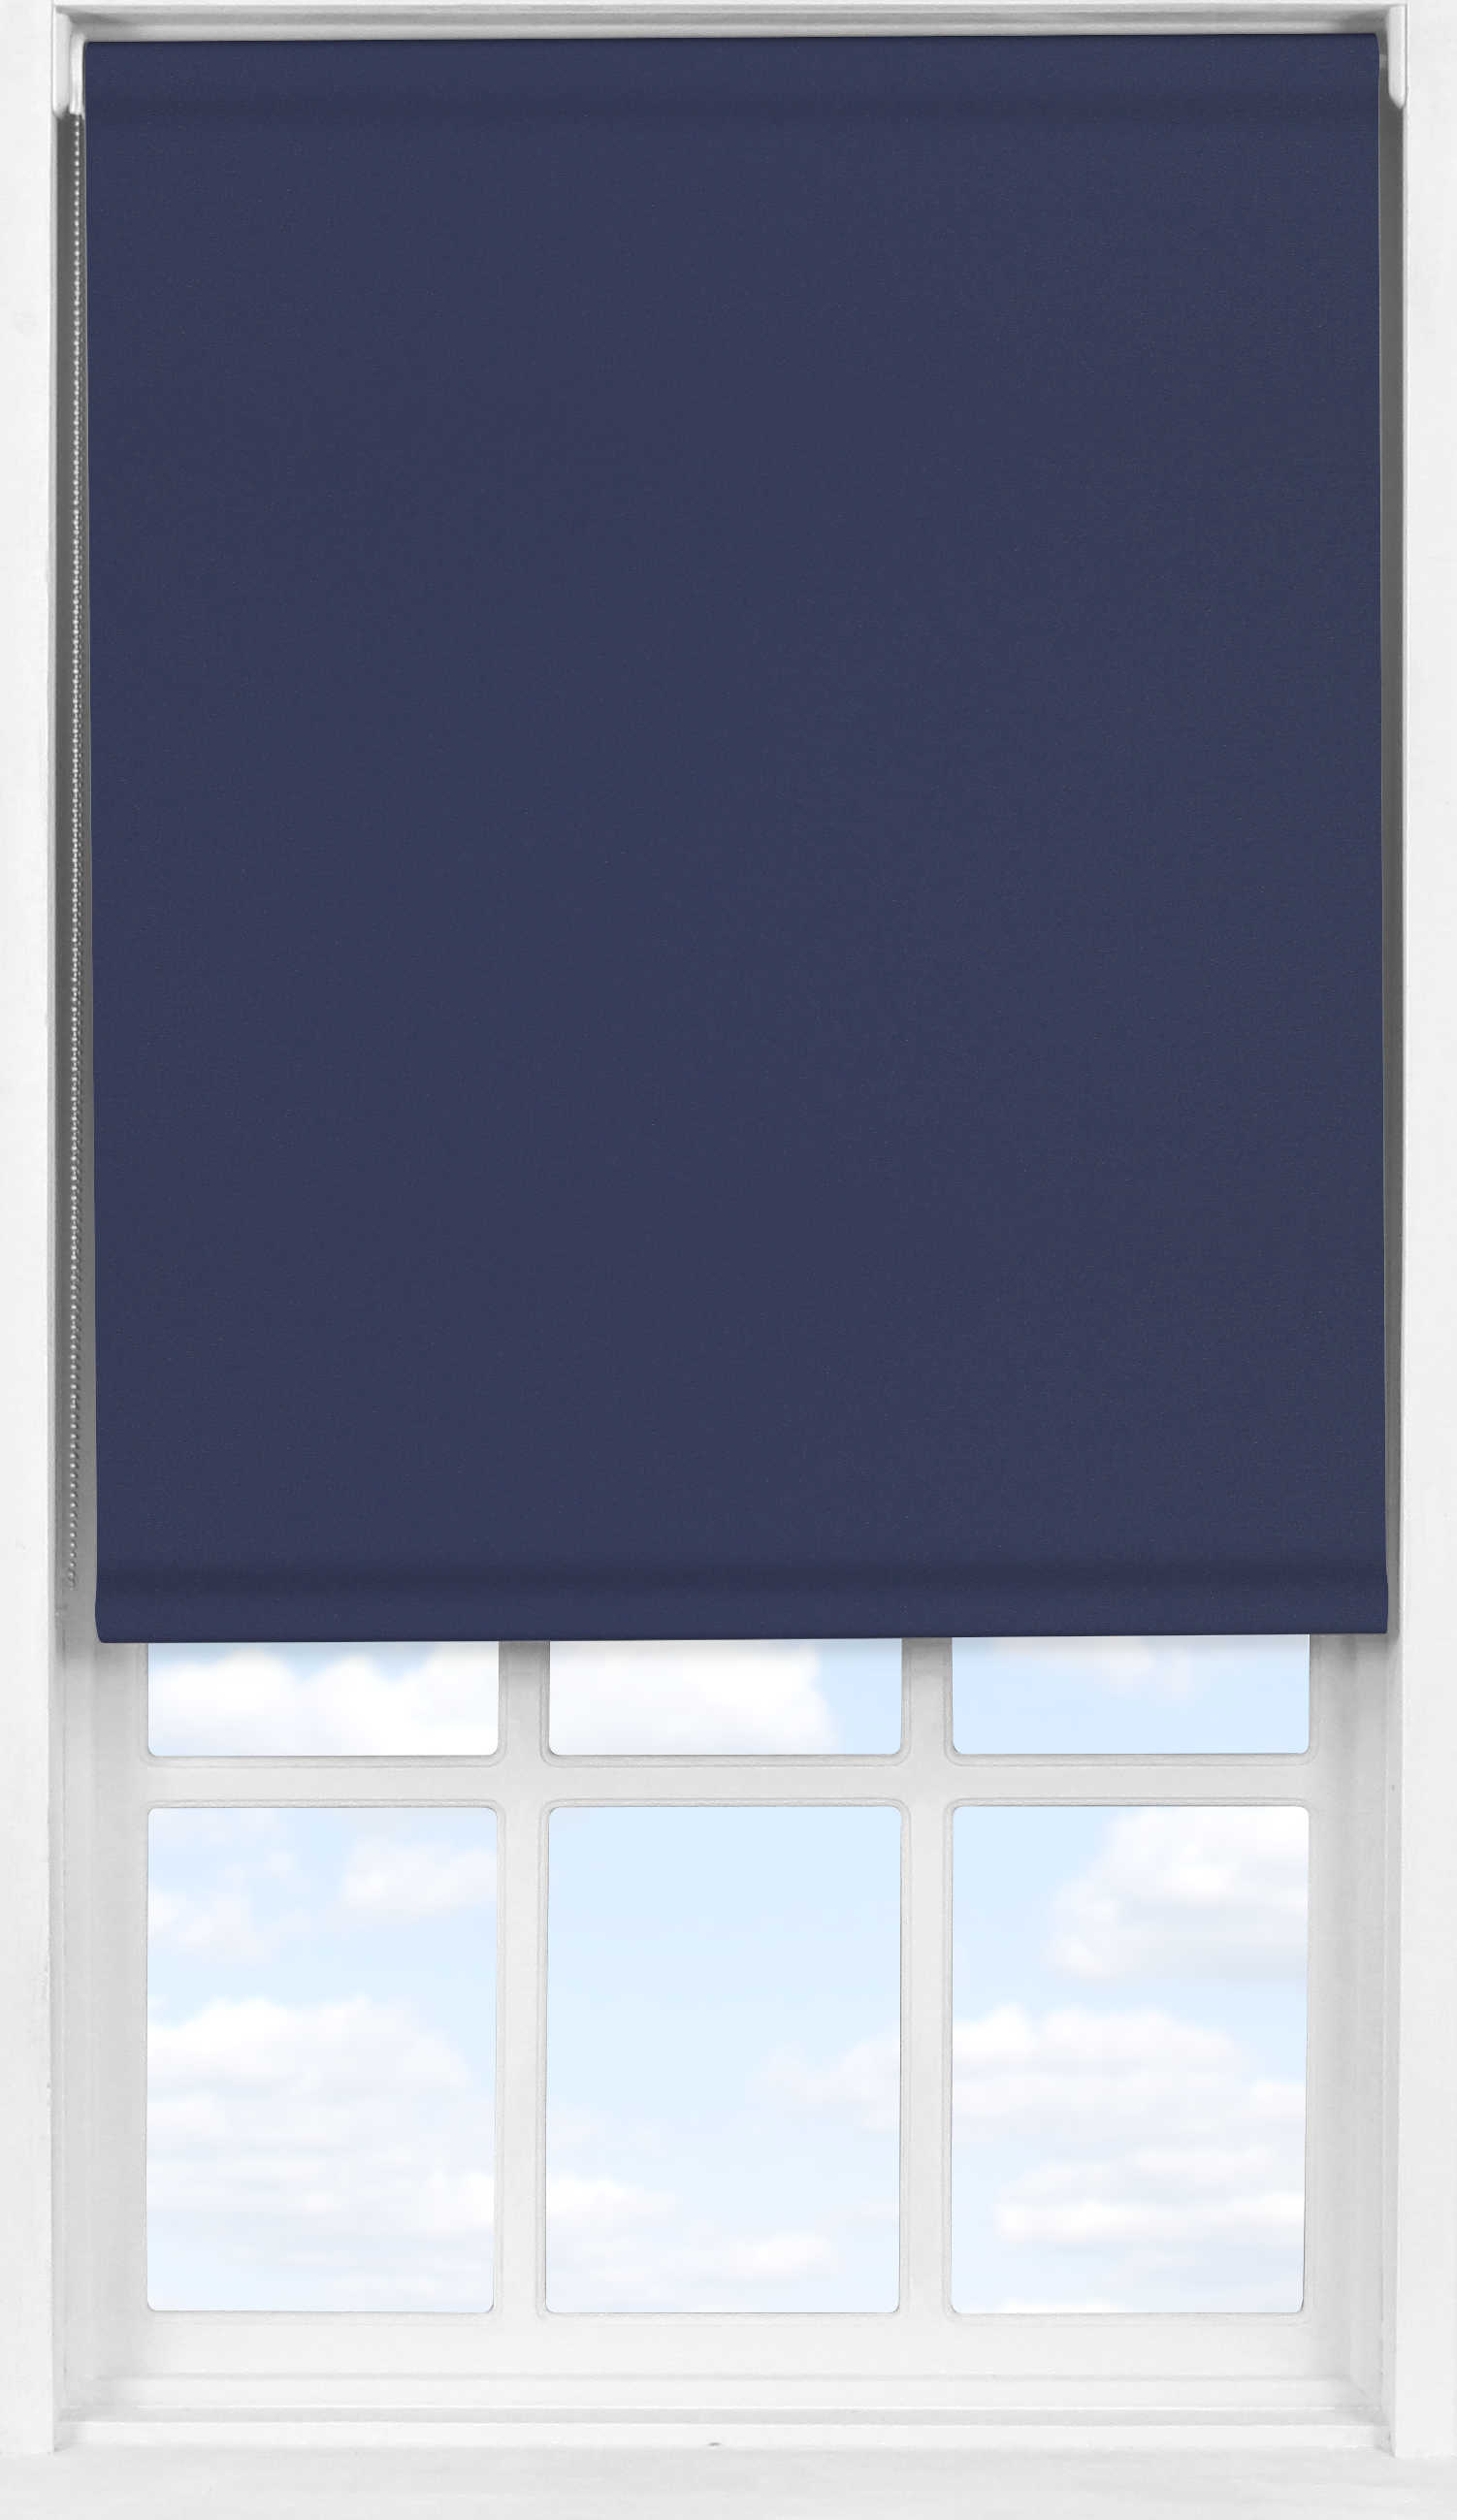 Easifit Roller Blind in Midnight Blue Translucent